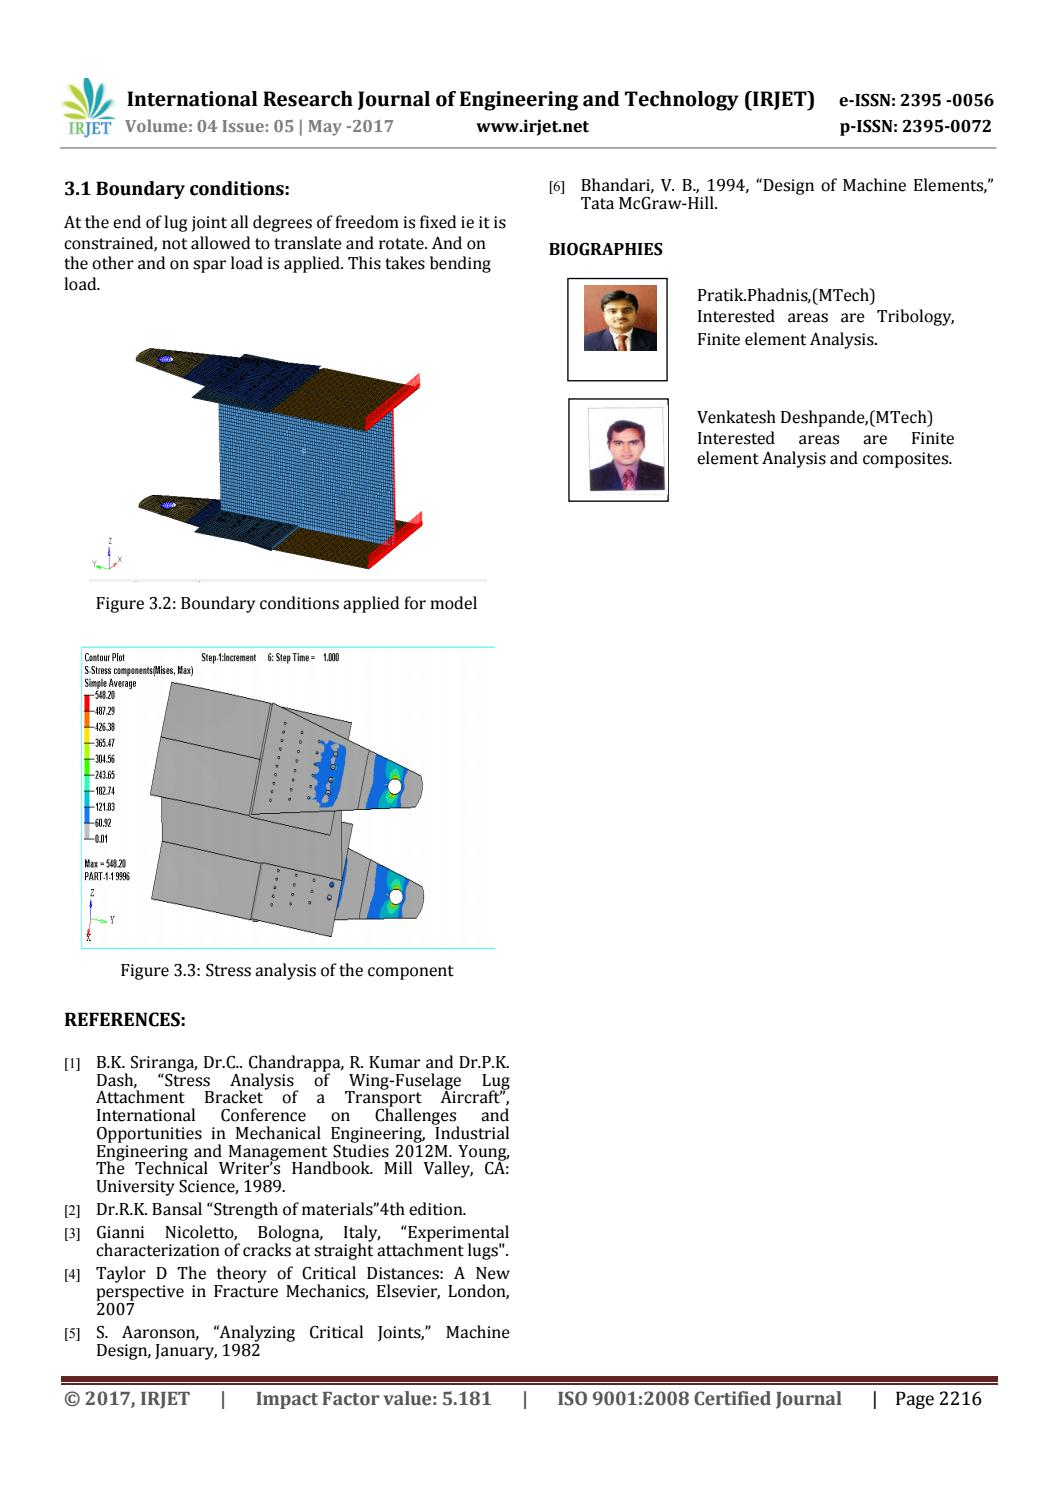 Stress Analysis Evaluation of Aircraft Lug-Joint by IRJET